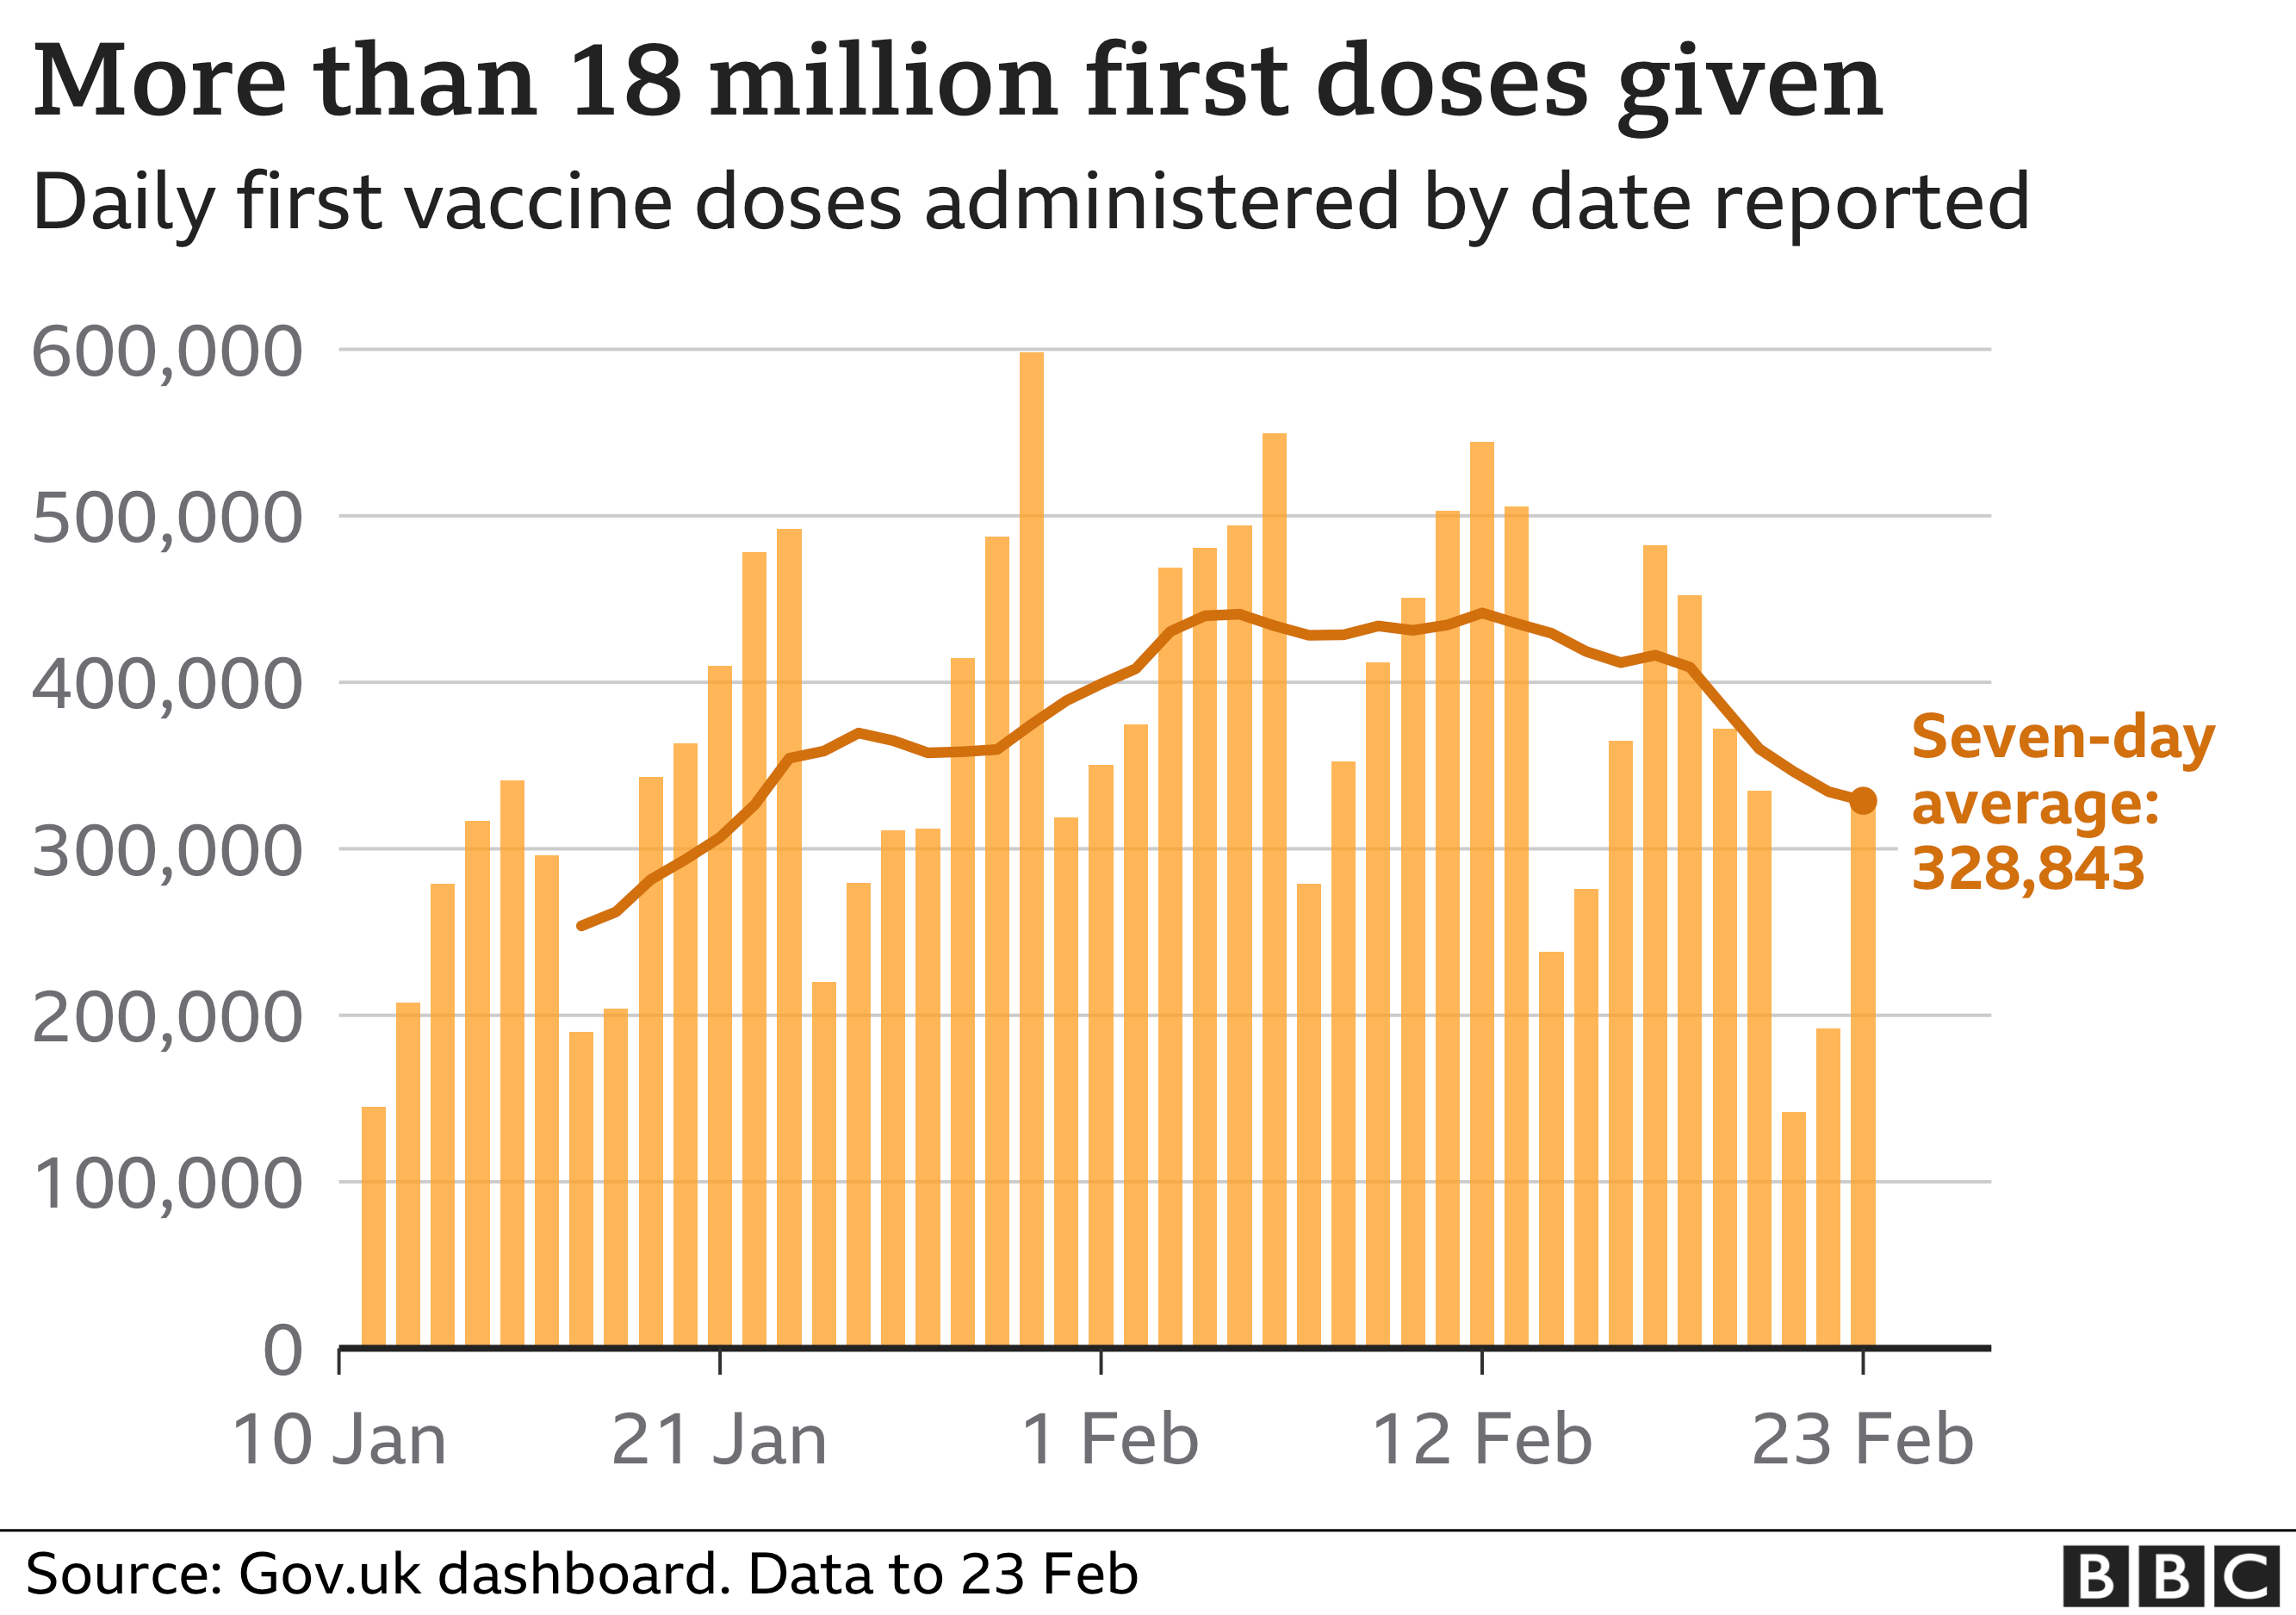 Chart showing daily vaccinations